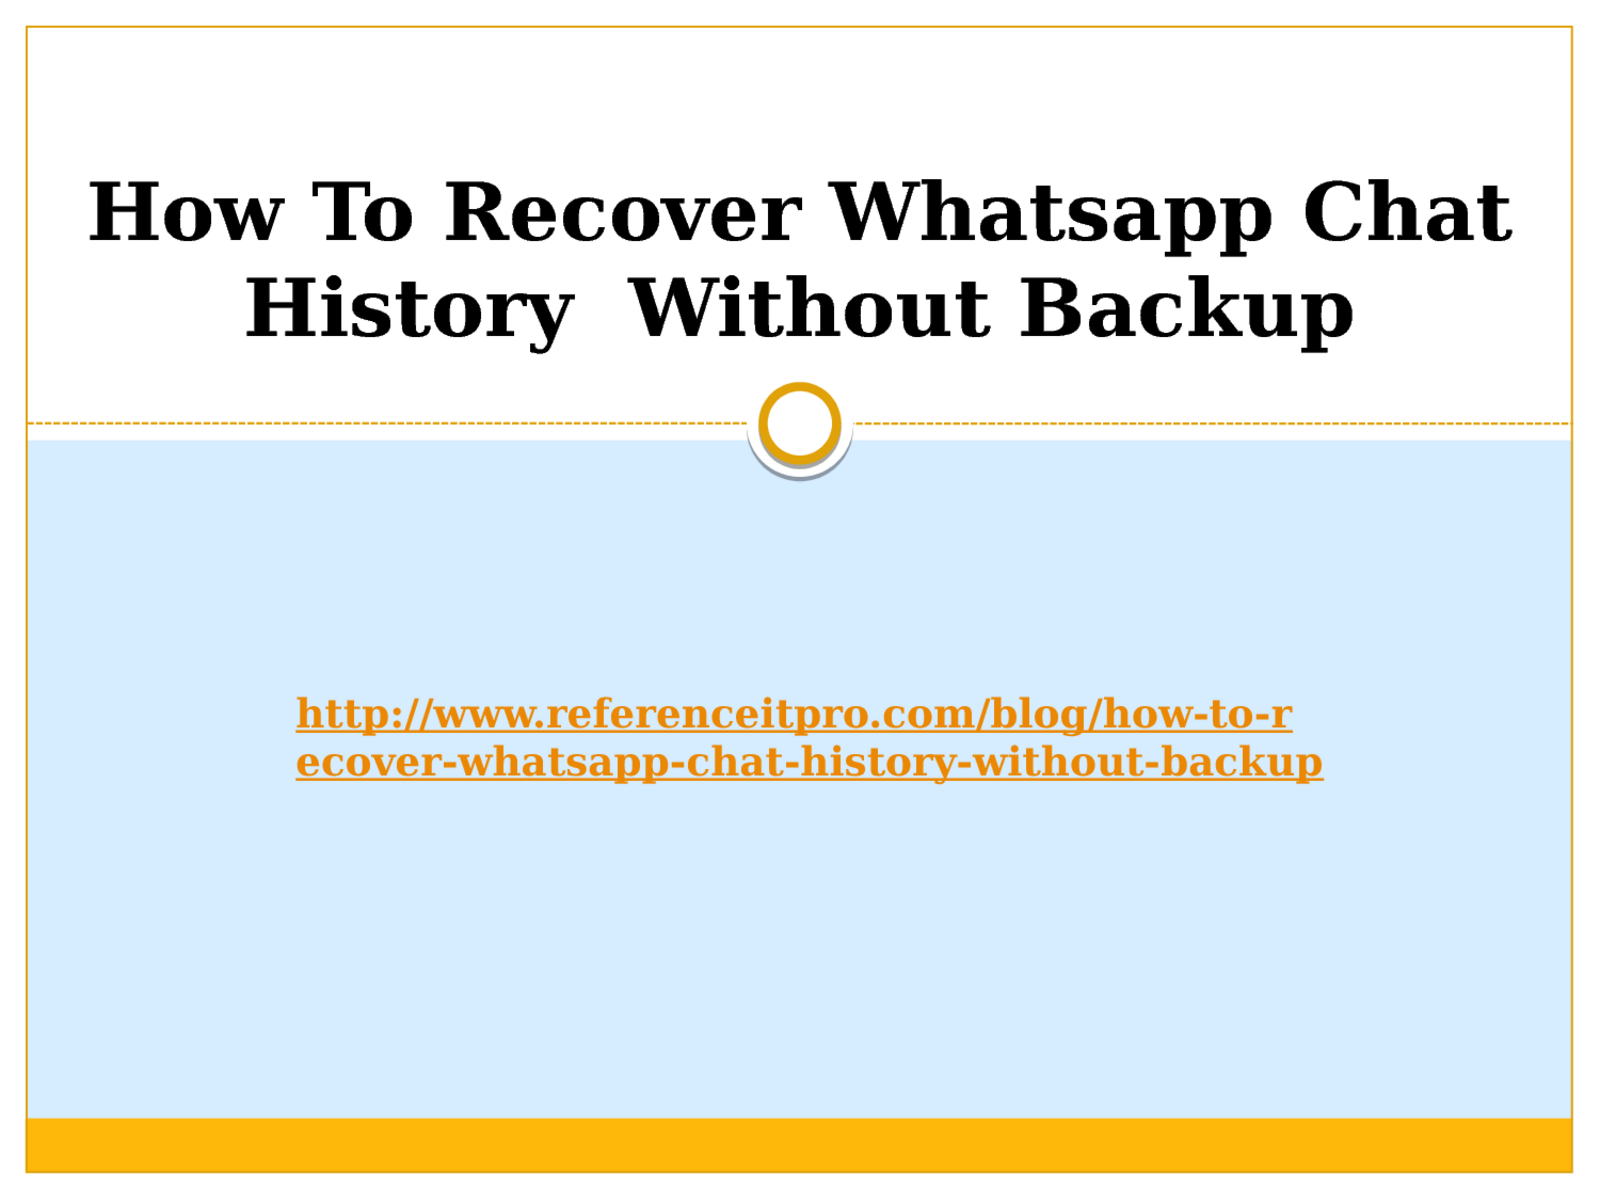 How To Recover Whatsapp Chat History Without Backup